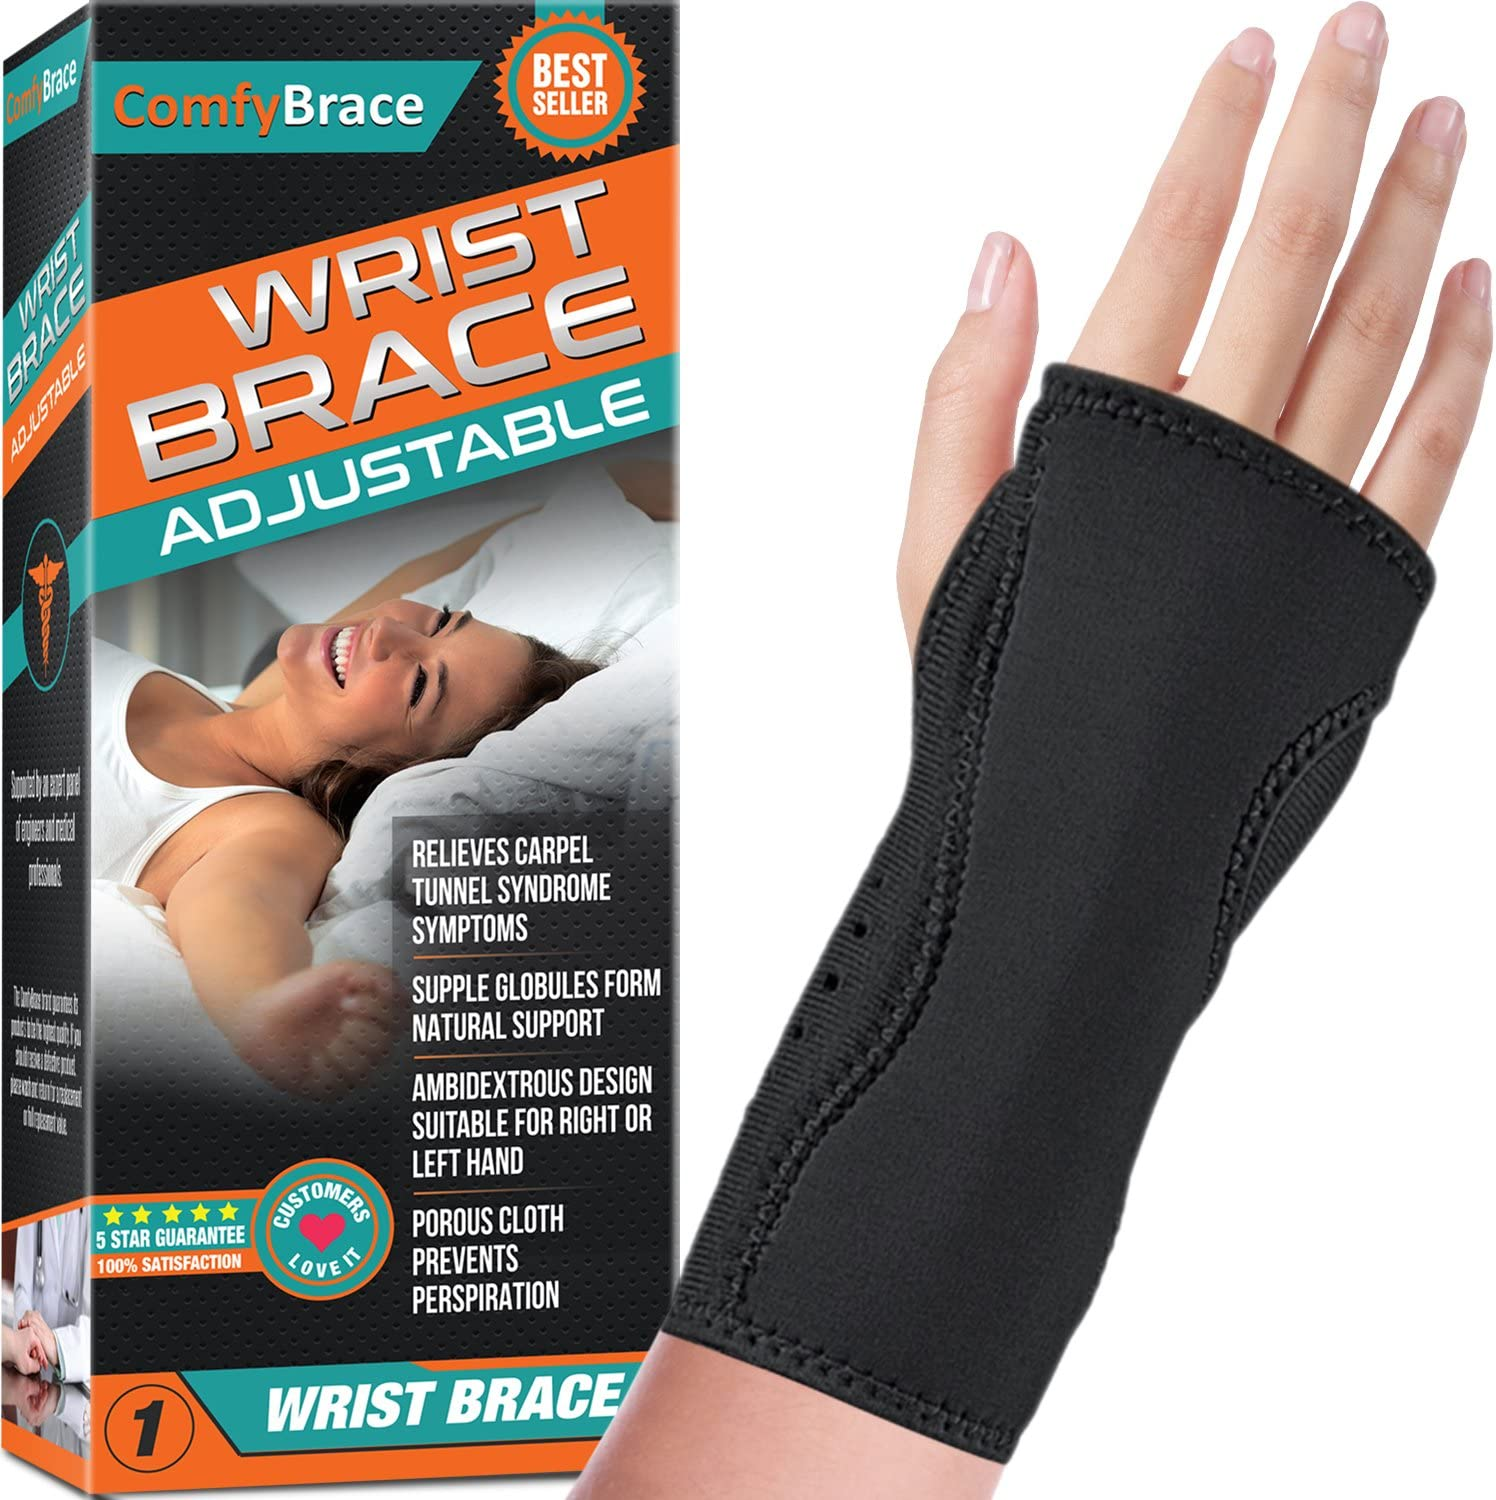 Night Wrist Sleep Support Brace - Fits Both Hands - Cushioned to Help With Carpal Tunnel and Relieve and Treat Wrist Pain ,Adjustable, Fitted-ComfyBrace: Health & Personal Care